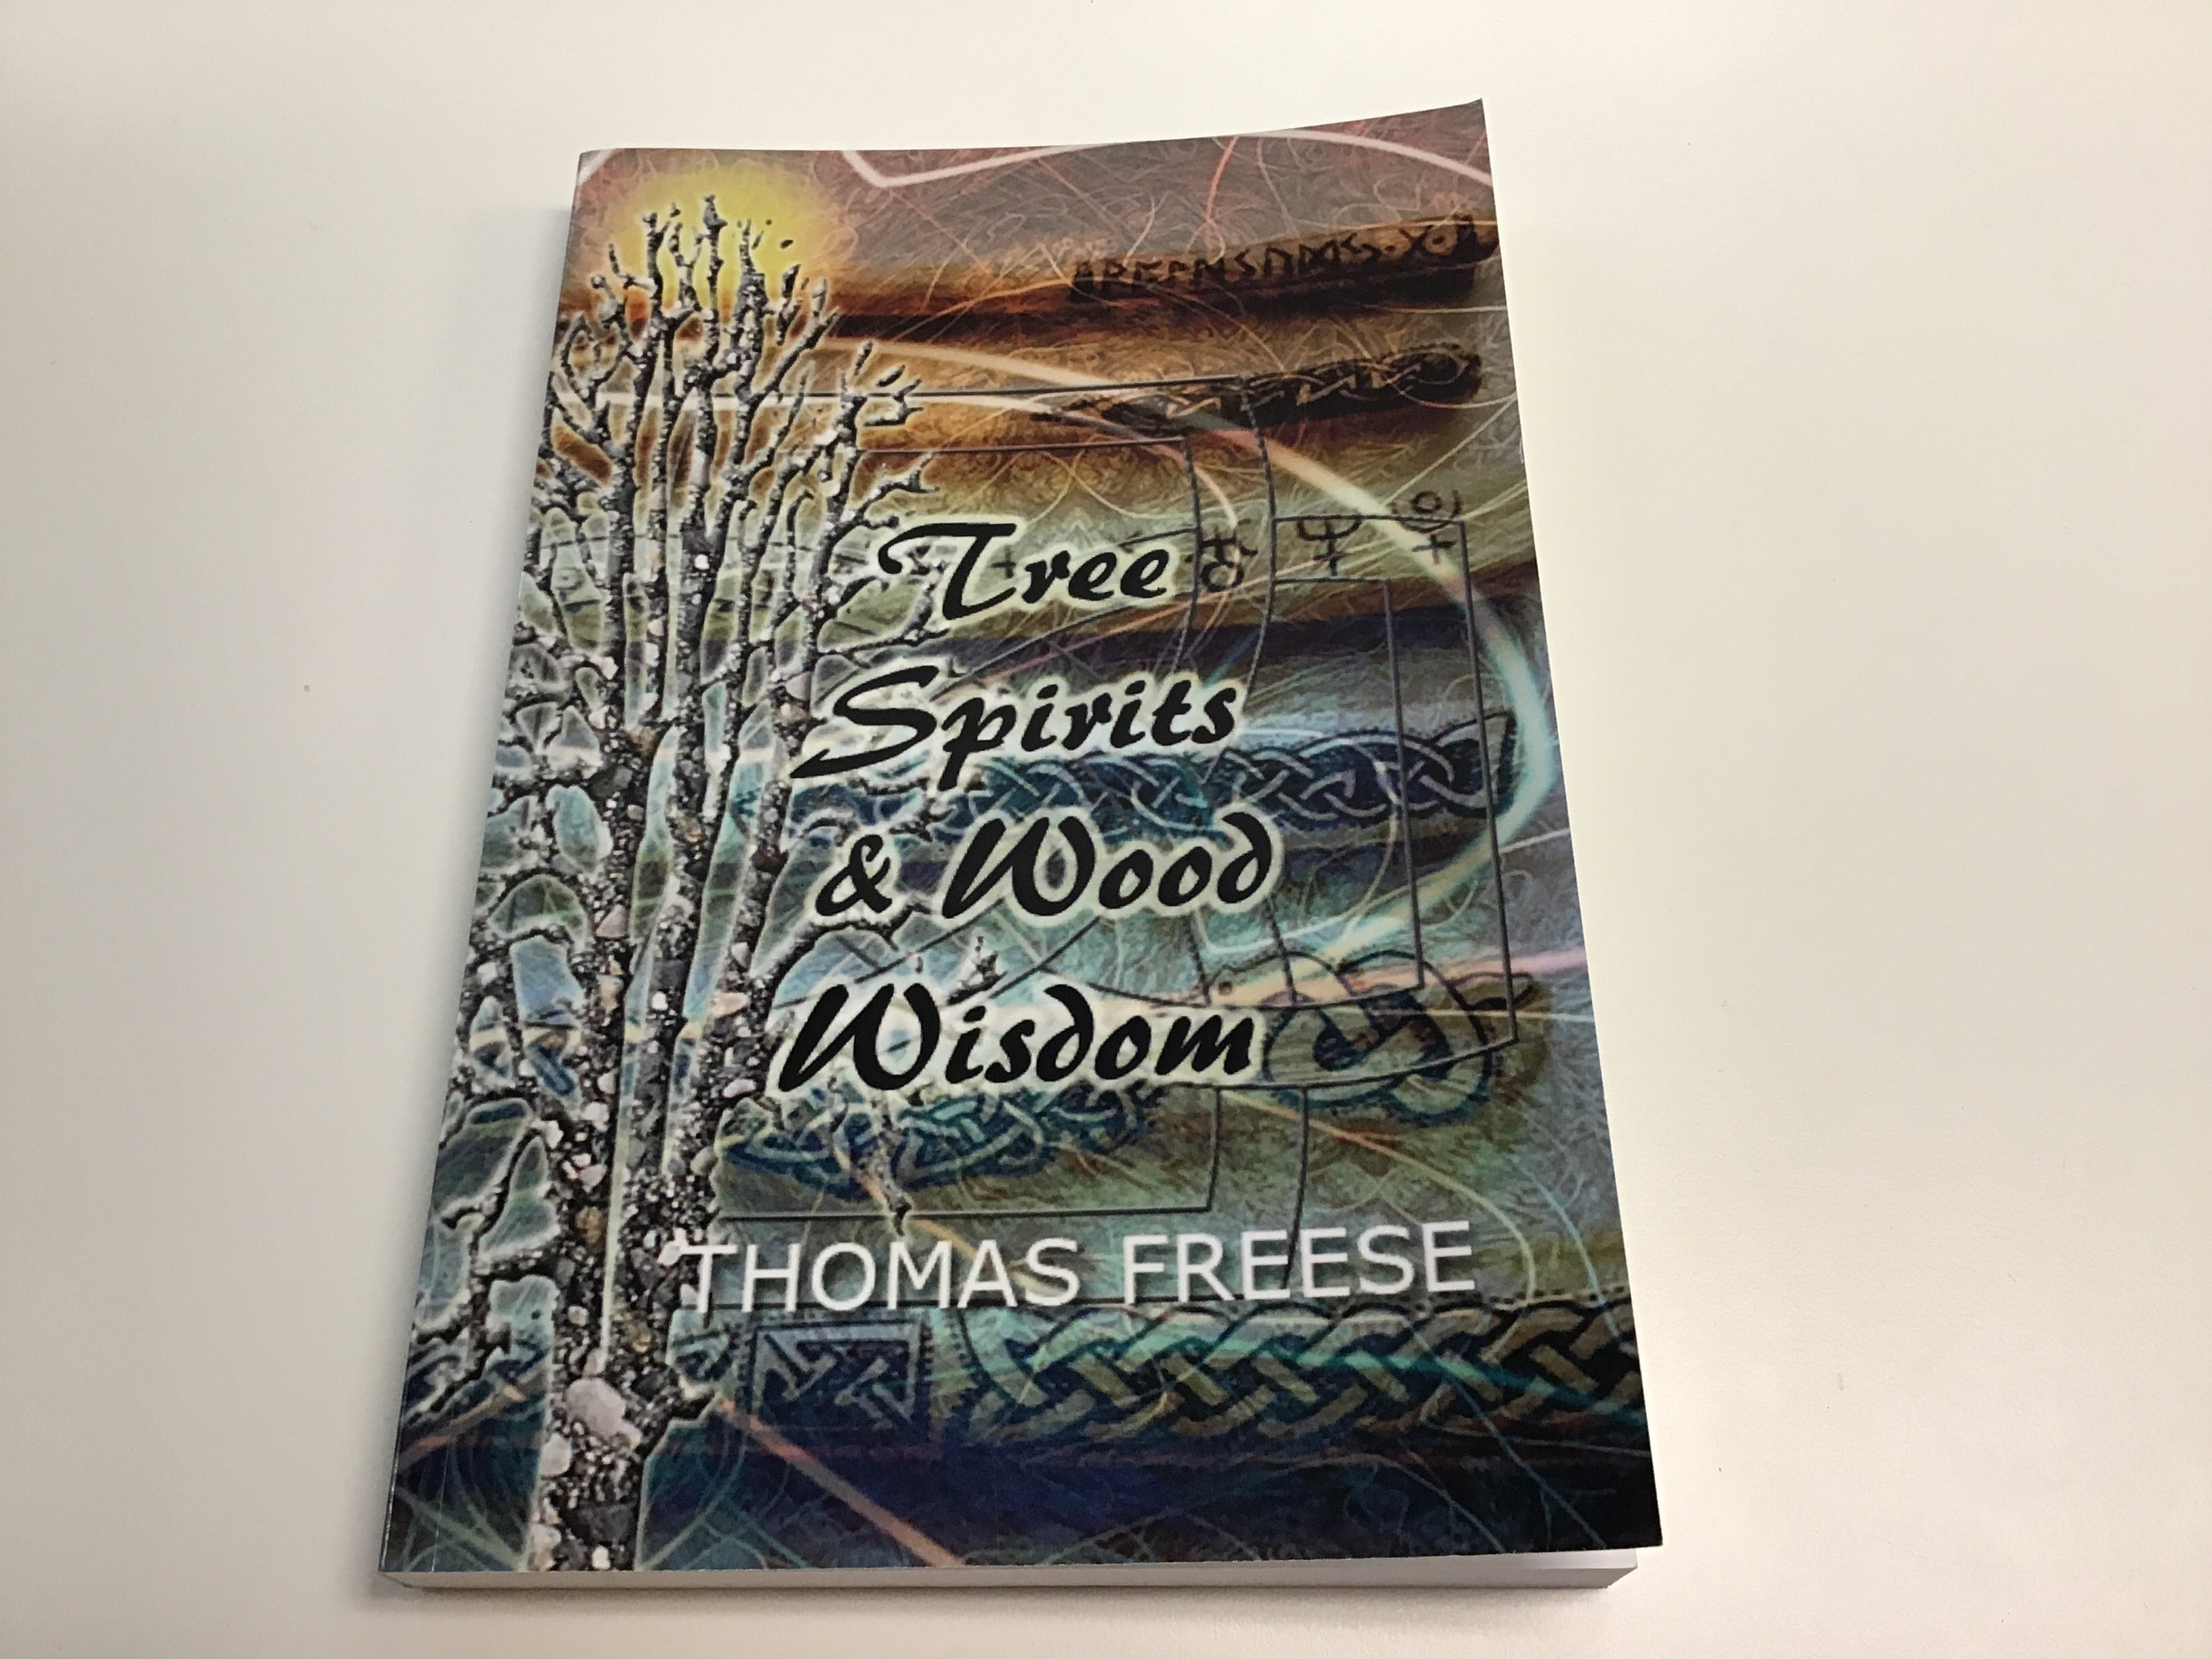 Tree Spirits and wood wisdom by Thomas Freese